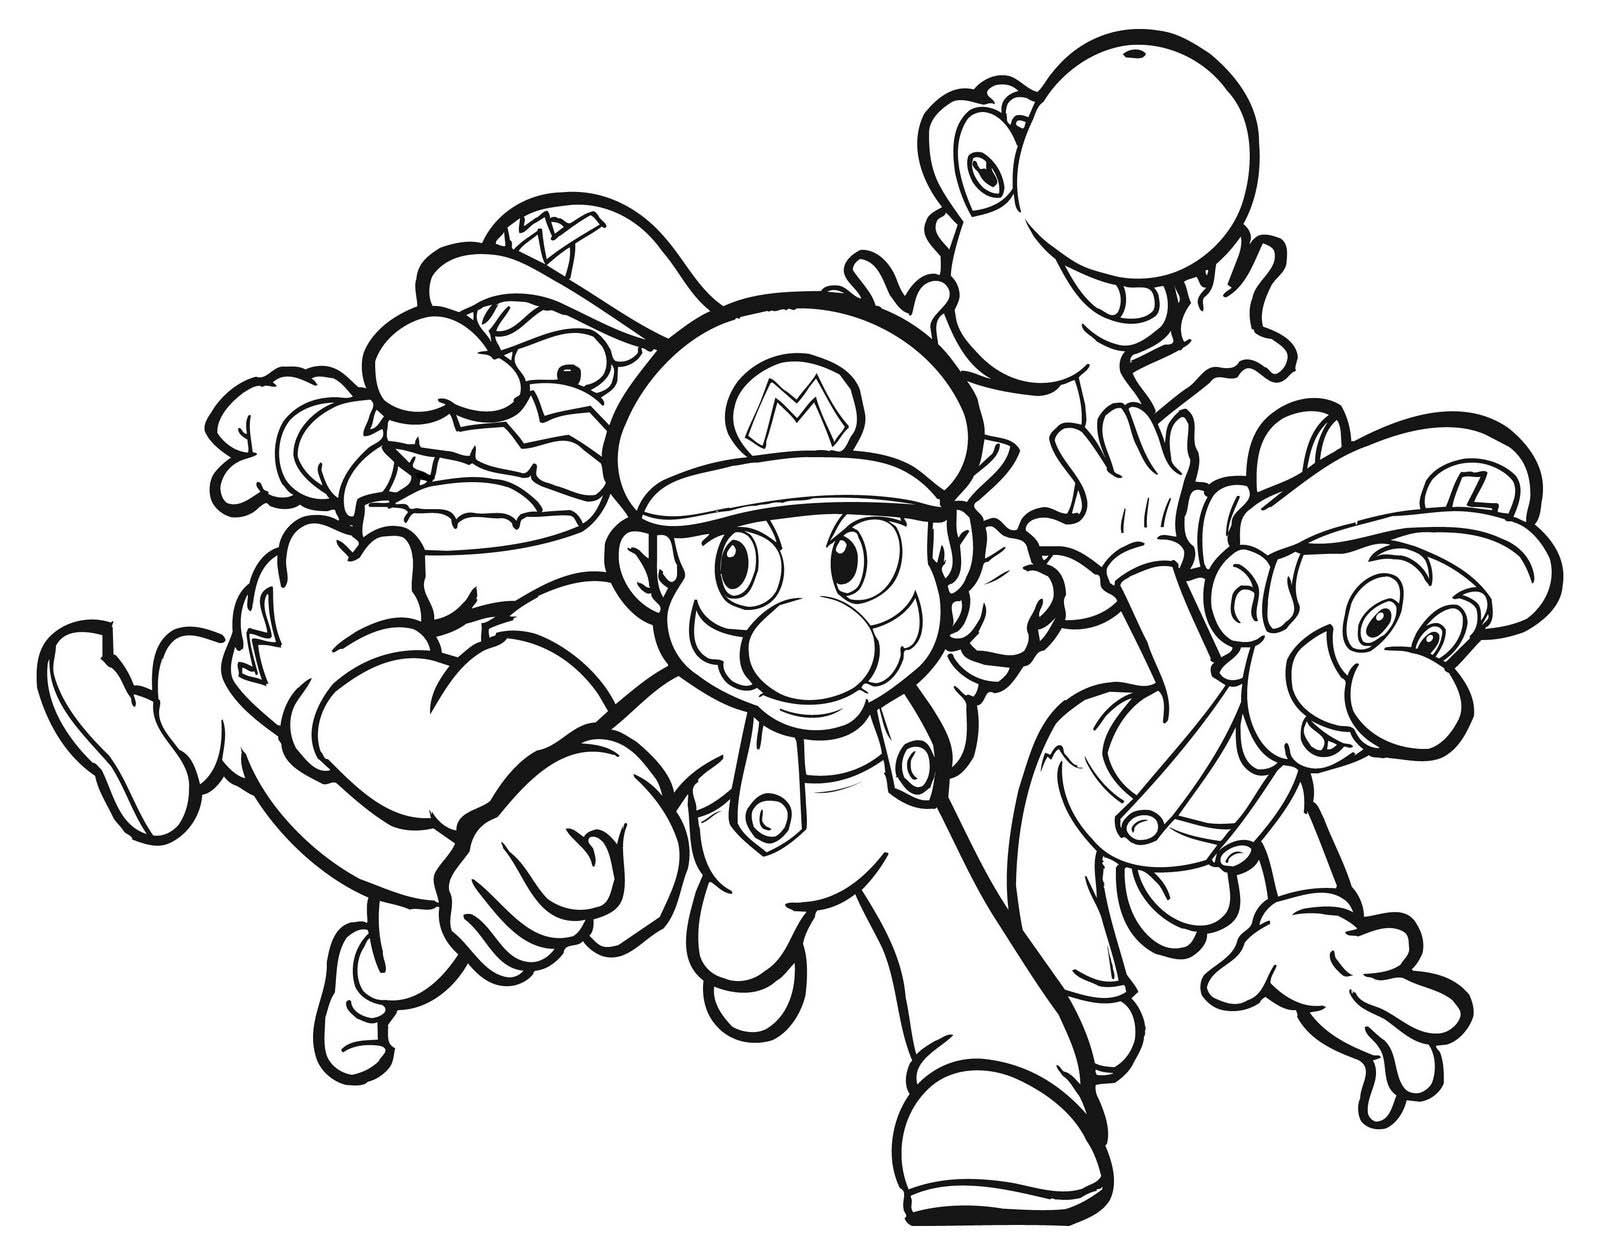 download super mario coloring pages 5 - Mario Coloring Page